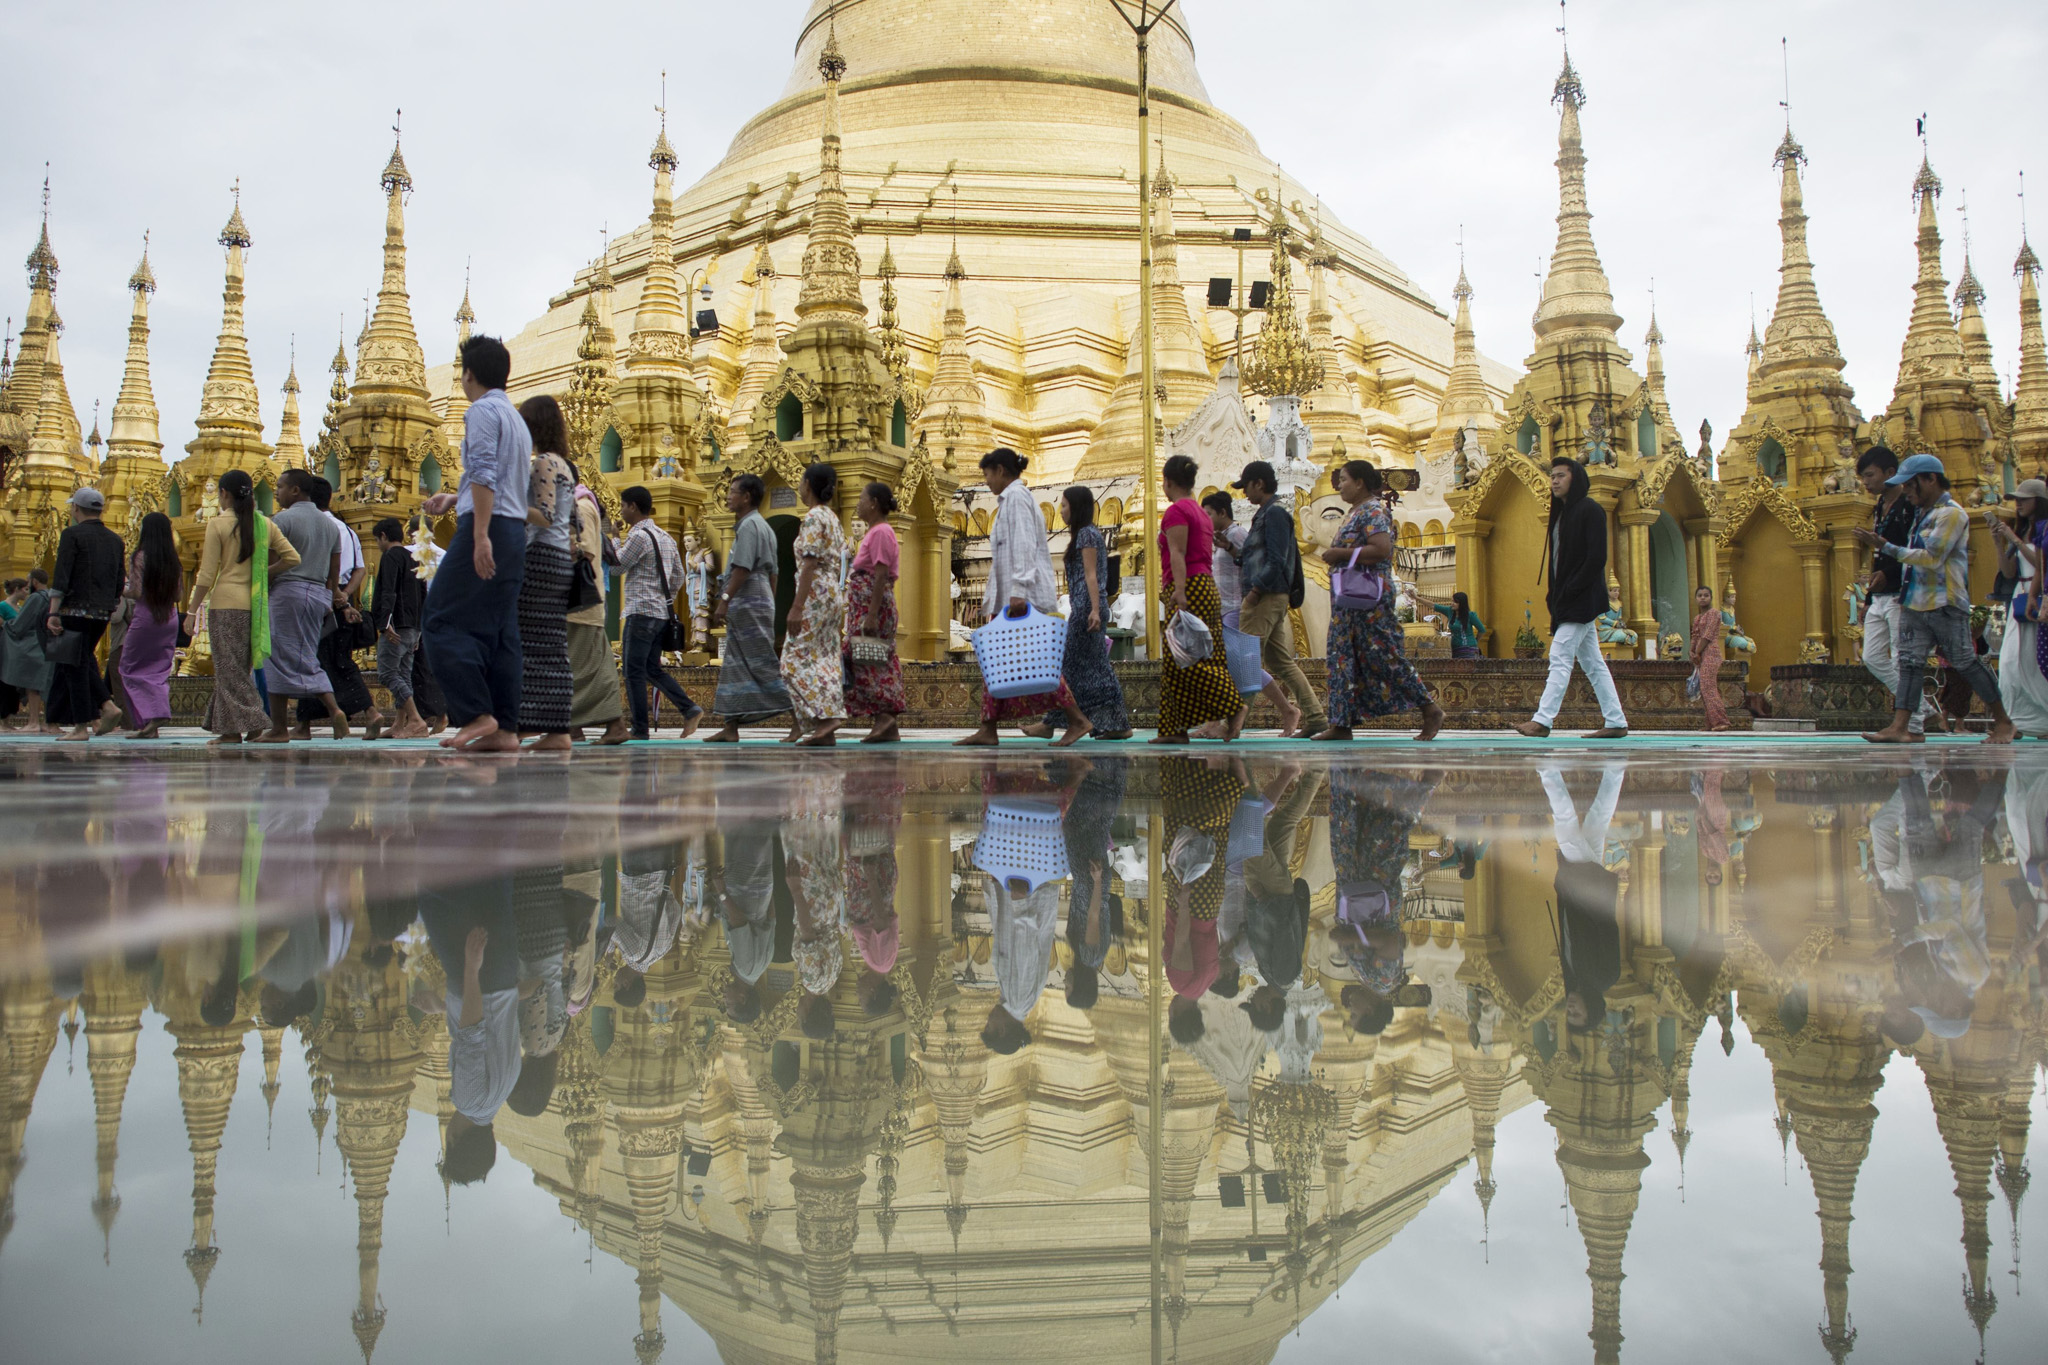 People visit Myanmar's landmark Shwedagon Pagoda in Yangon on July 14, 2016.  Around 89 percent of the population in Myanmar practice Buddhism, with the rest divided among Christians and Muslims.  / AFP PHOTO / YE AUNG THUYE AUNG THU/AFP/Getty Images